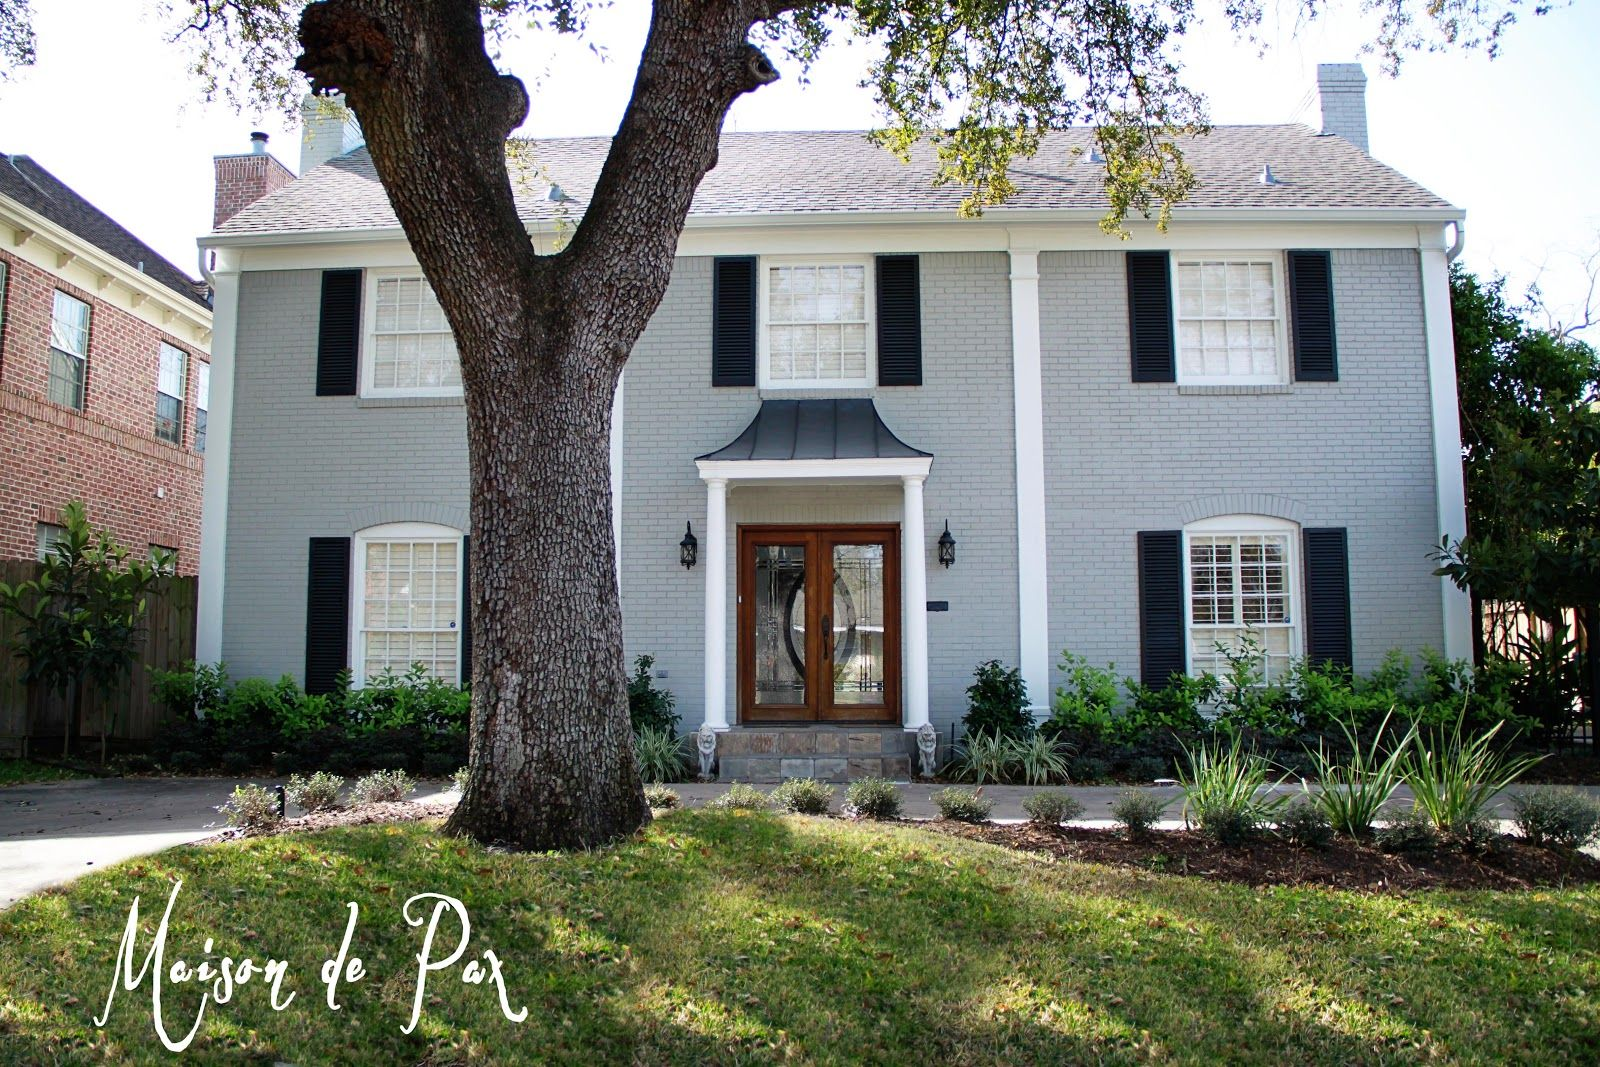 Ellie Gray By Sherwin Williams With Extra White And True Black Details Exterior Pain Colors